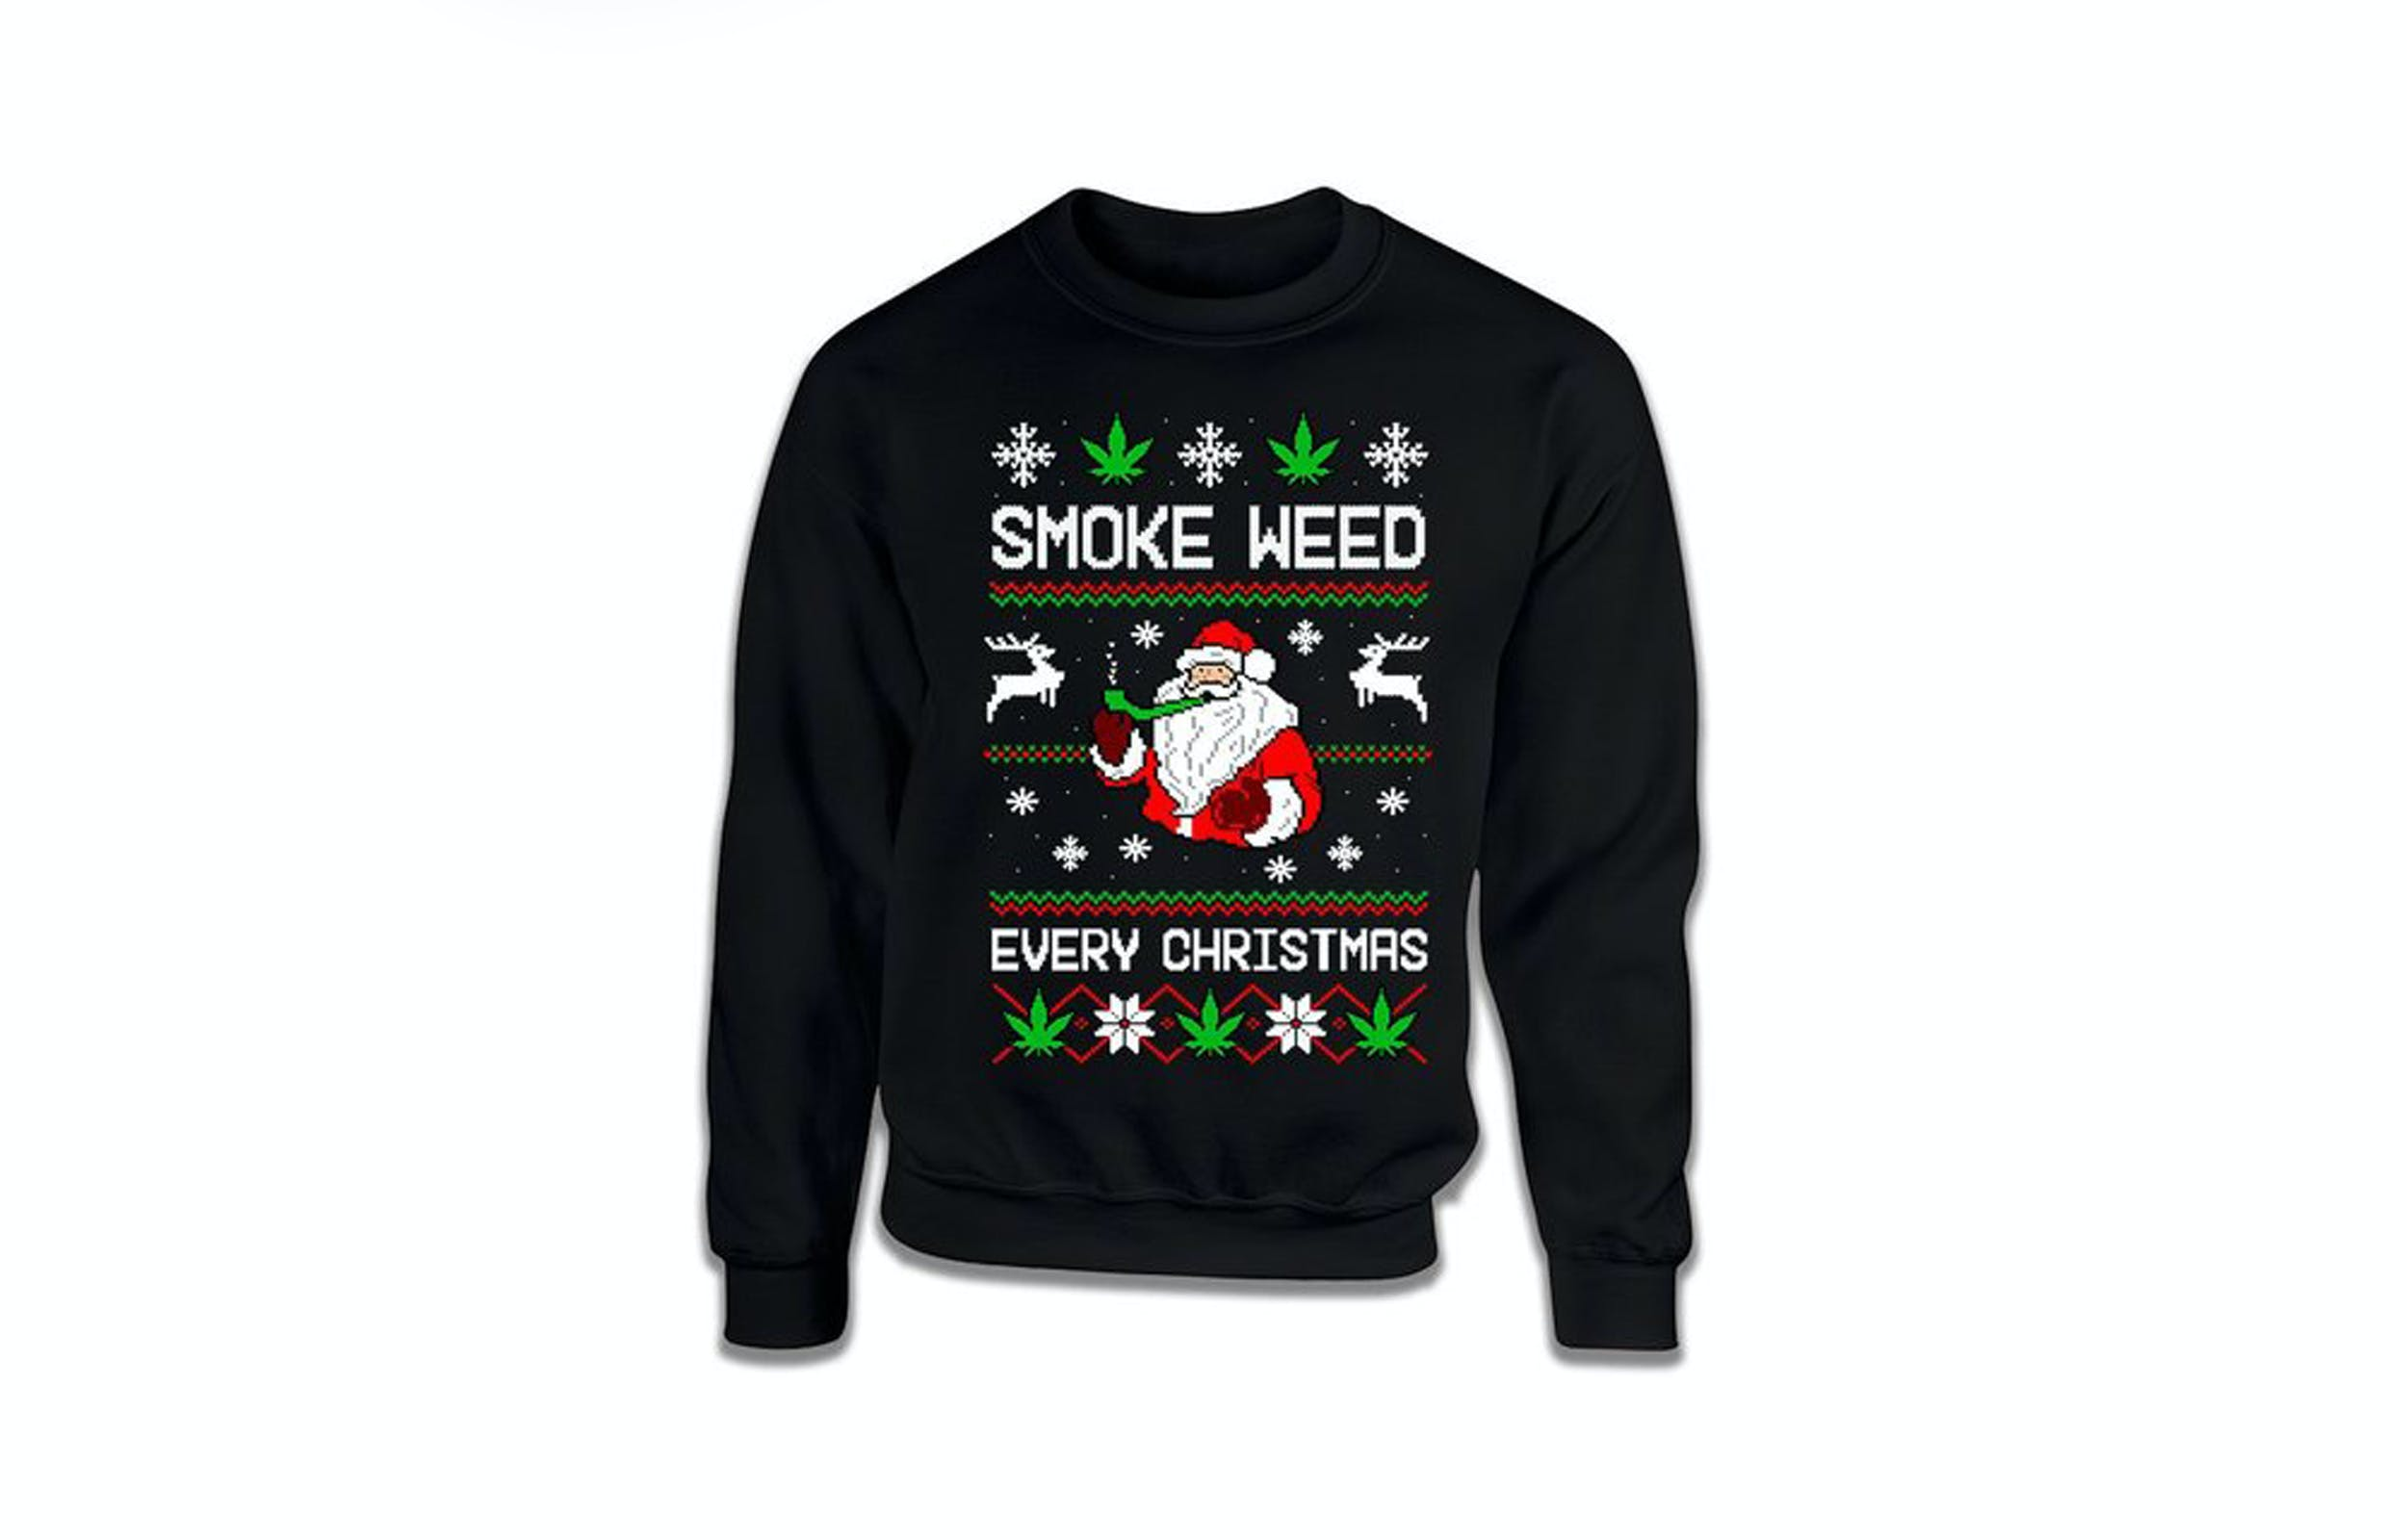 A weed Christmas sweater is perfect for ugly Christmas sweater parties